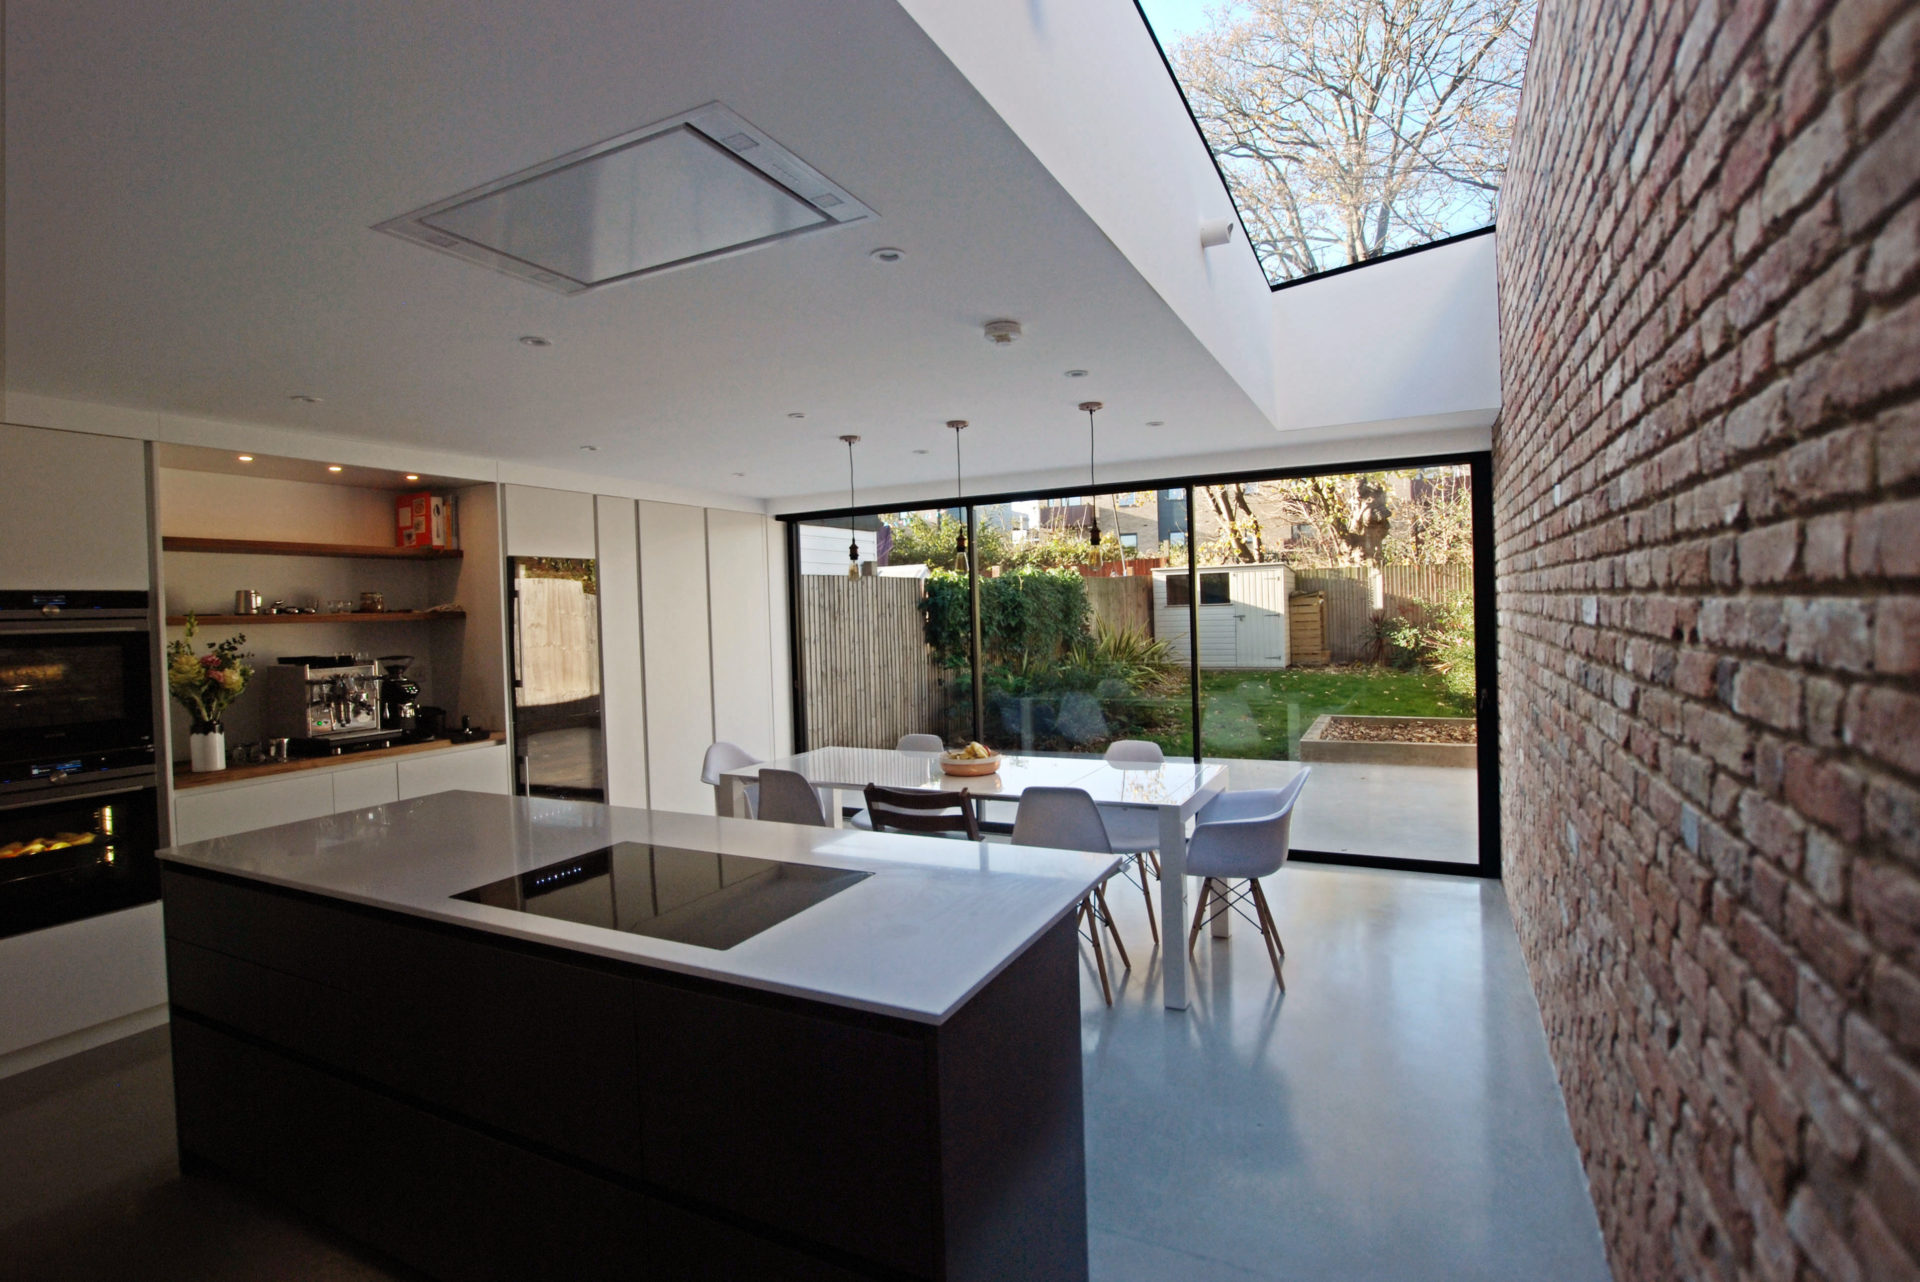 London architecture kitchen extension